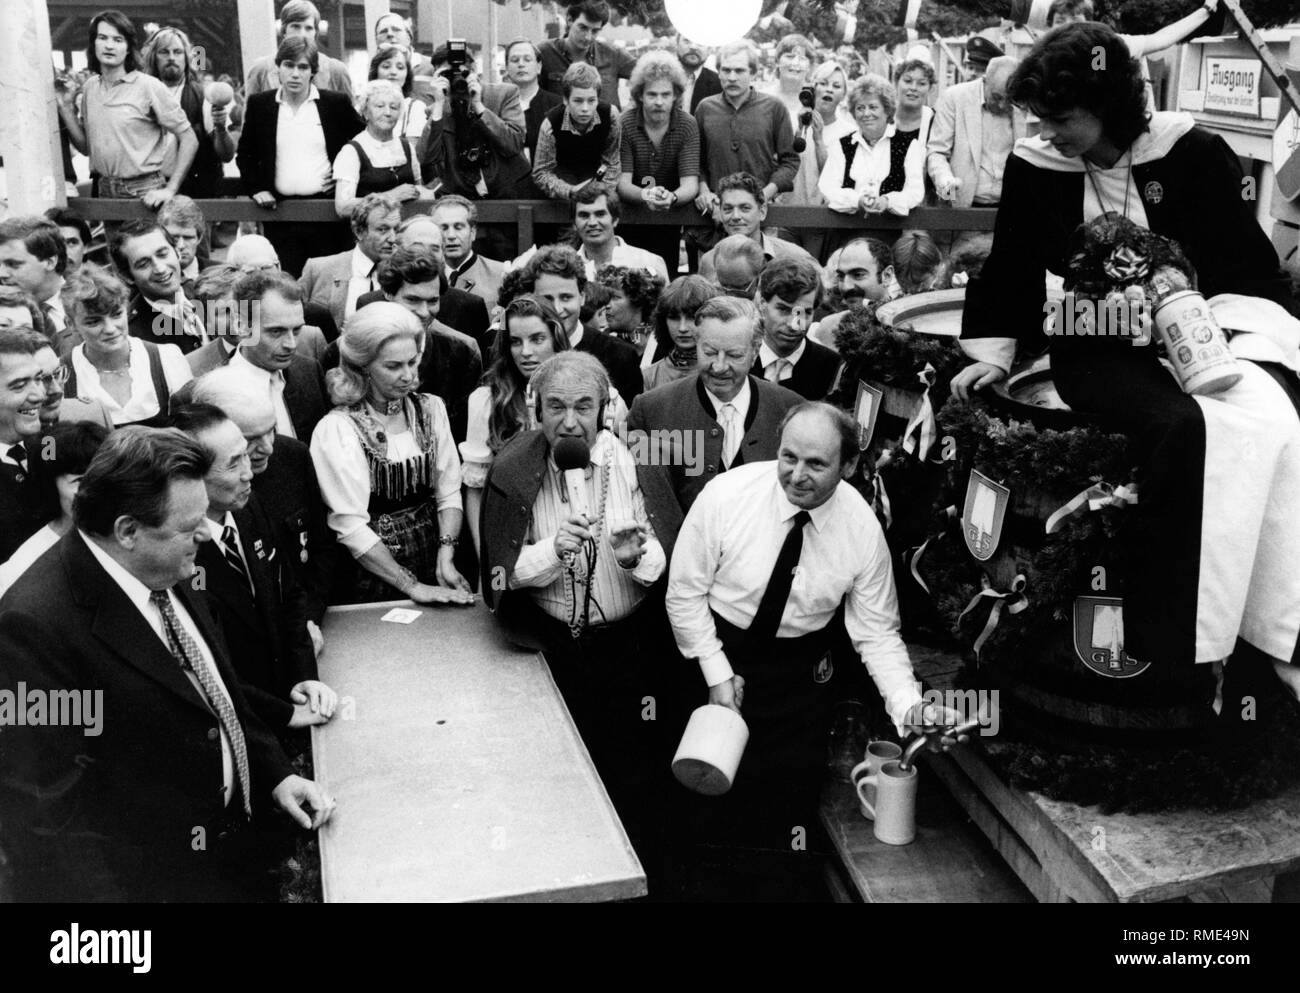 Munich's Lord Mayor Erich Kiesl (CSU, right) opens the Oktoberfest with the traditional tapping of the keg. On the left, the Bavarian Prime Minister Franz-Josef-Strauss. Besides Kiesl, Oktoberfest reporter Michael Stiegler, next to him Edigna Kiesel. In the background at left with microphone, SZ reporter Otto Fischer. - Stock Image